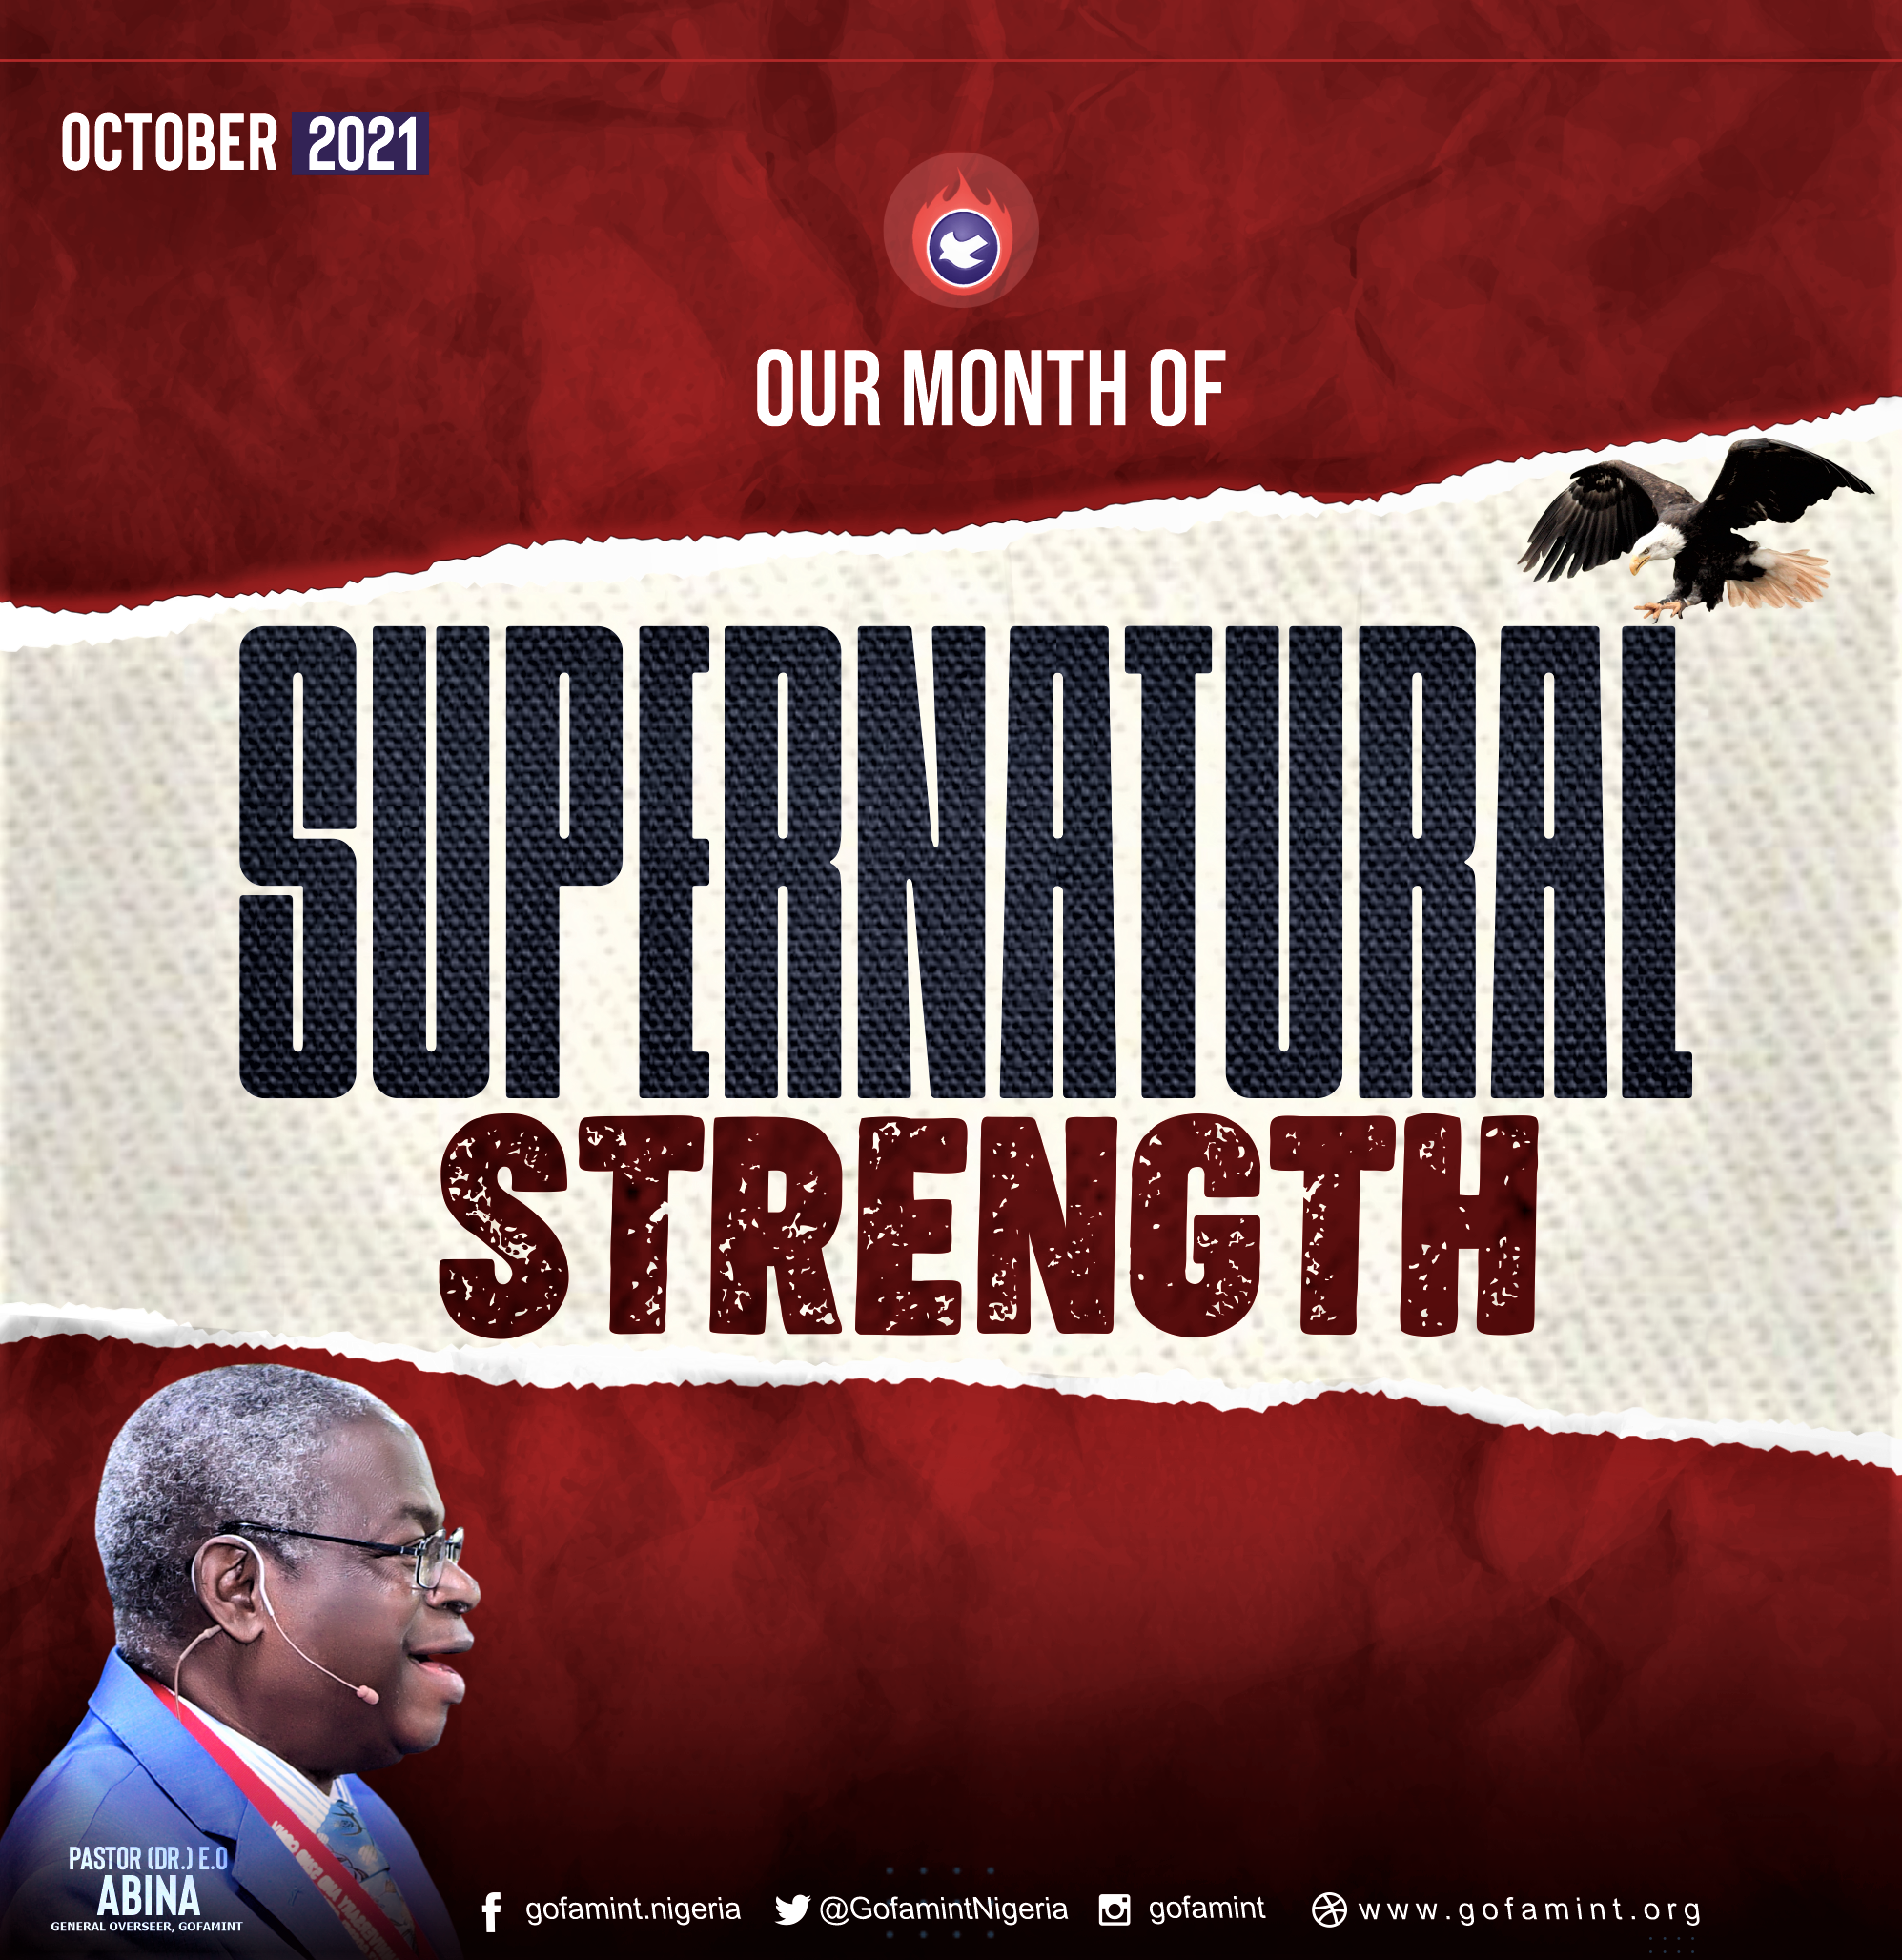 PROPHETIC DECLARATION FOR THE MONTH OF OCTOBER 2021